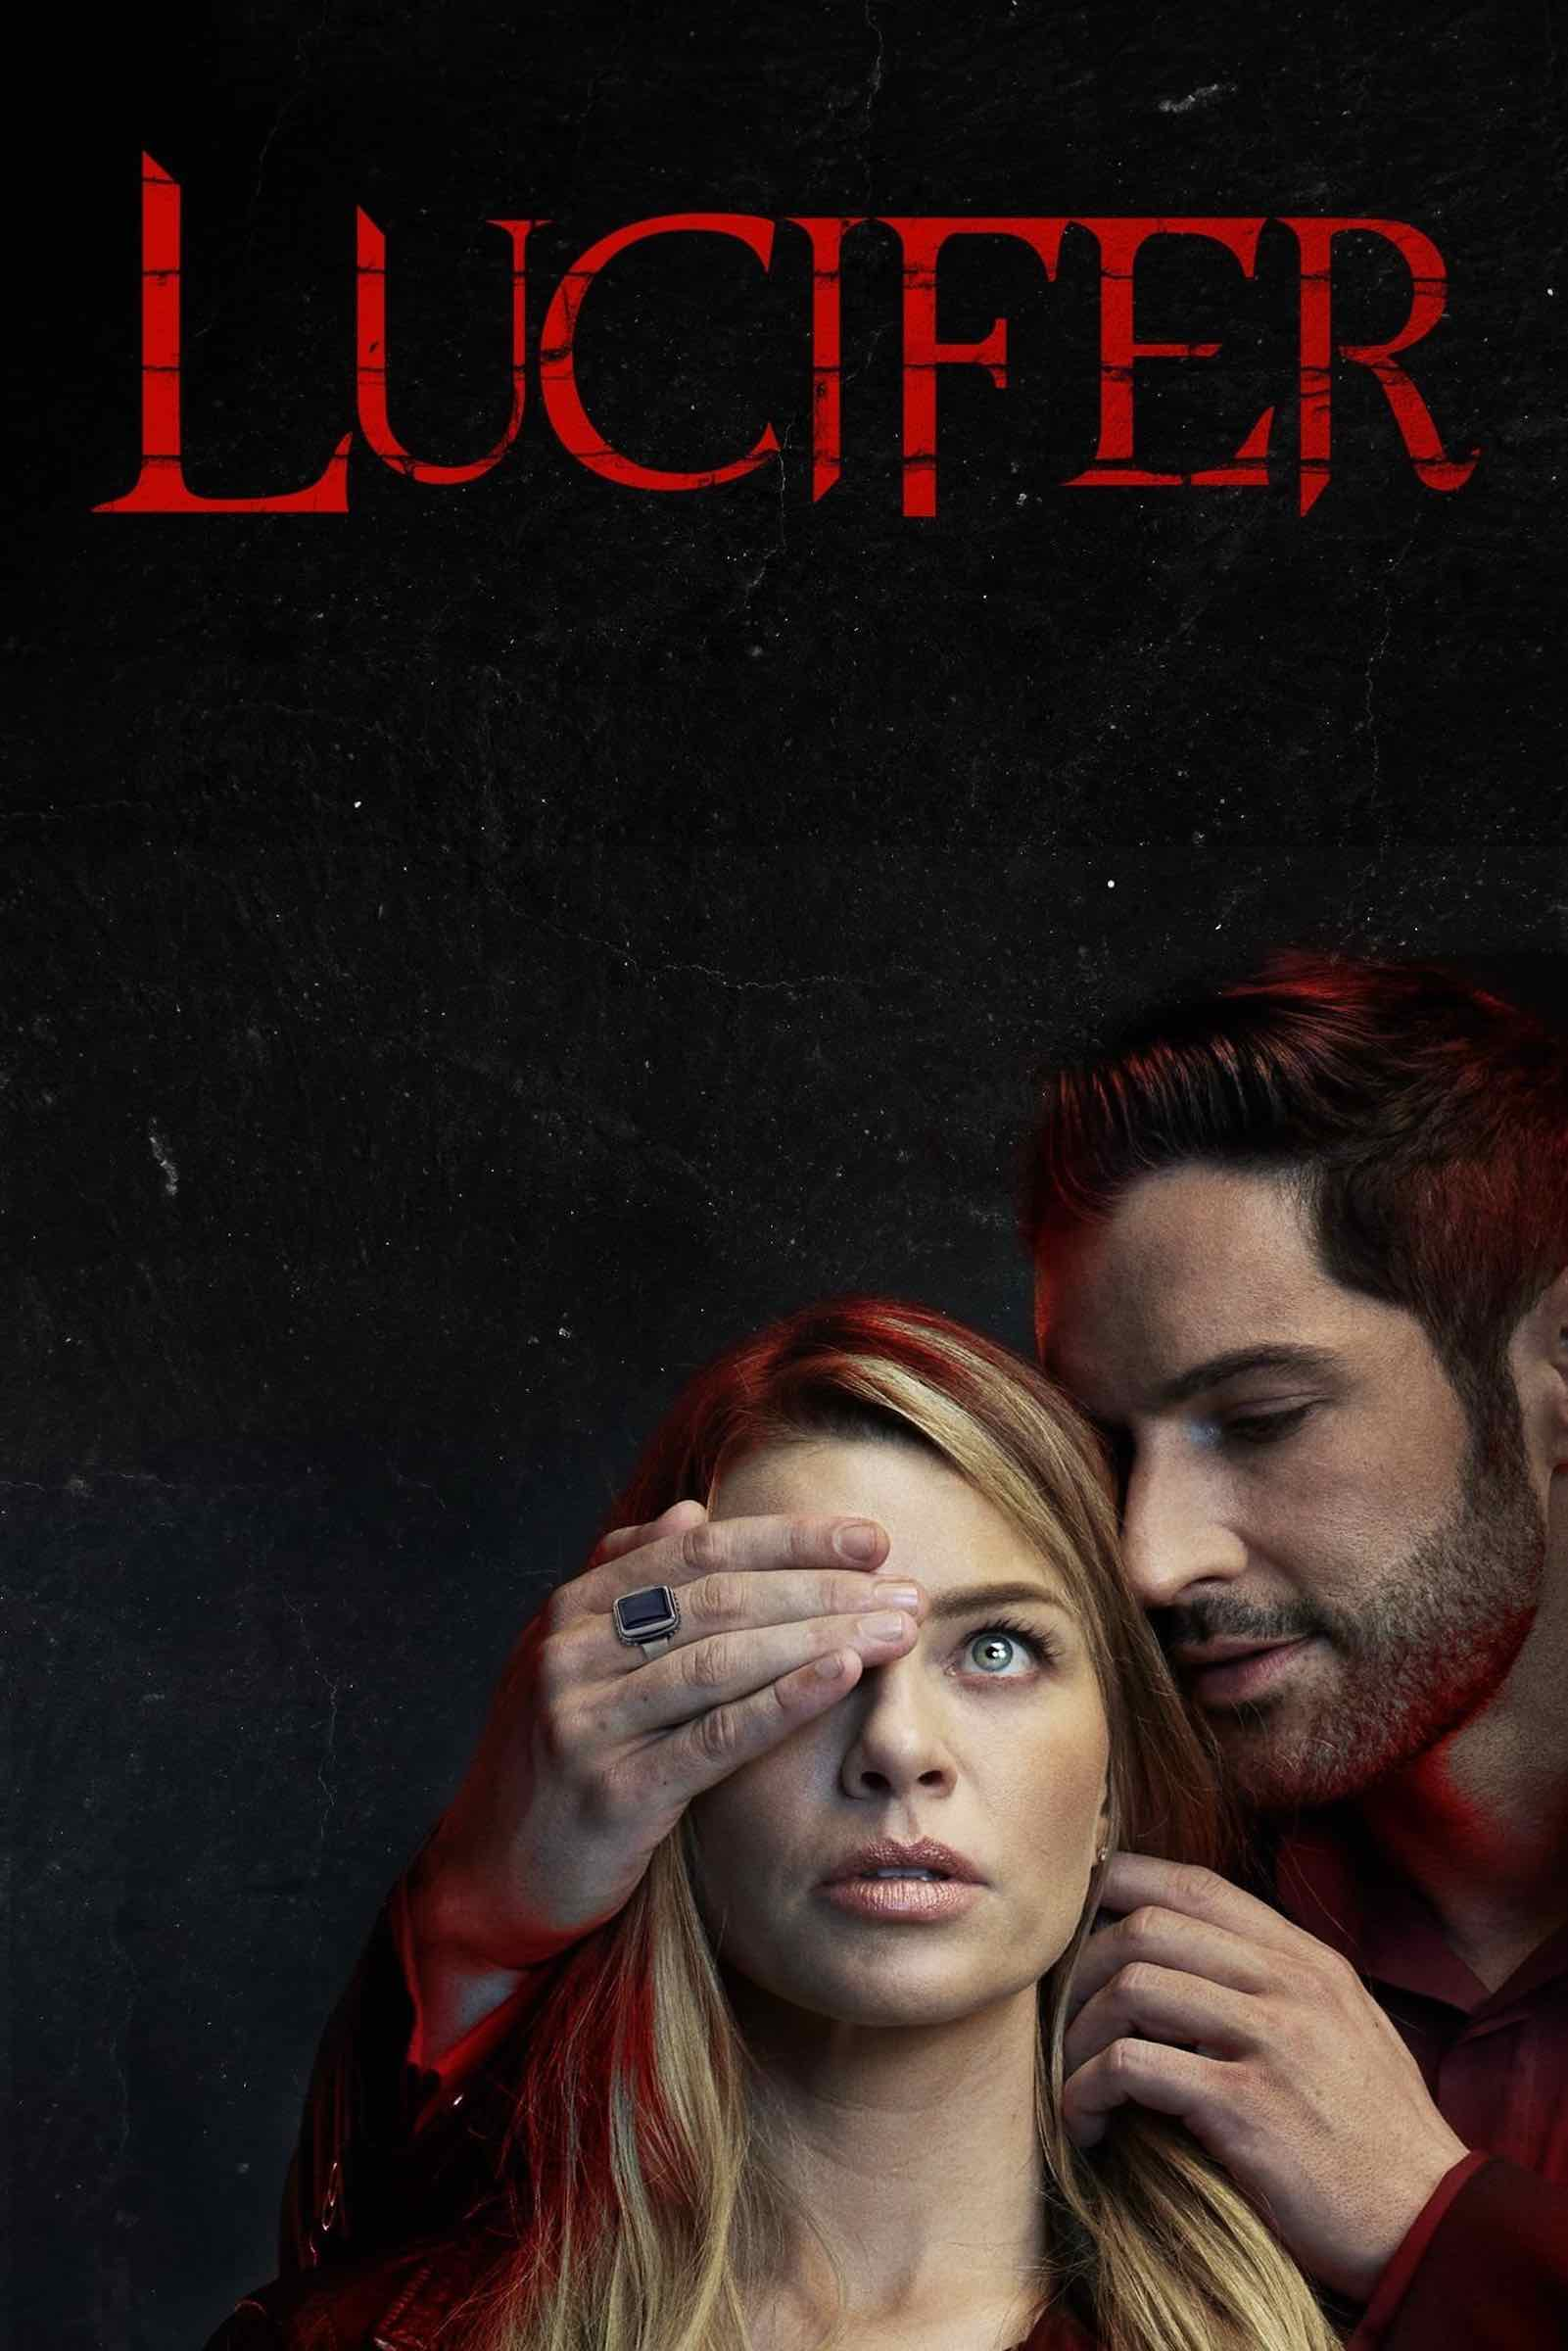 Based on sunk costs and the runaway success of season 4, it's highly unlikely Netflix won't renew 'Lucifer'. Here's why fans want Netflix to #RenewLucifer.